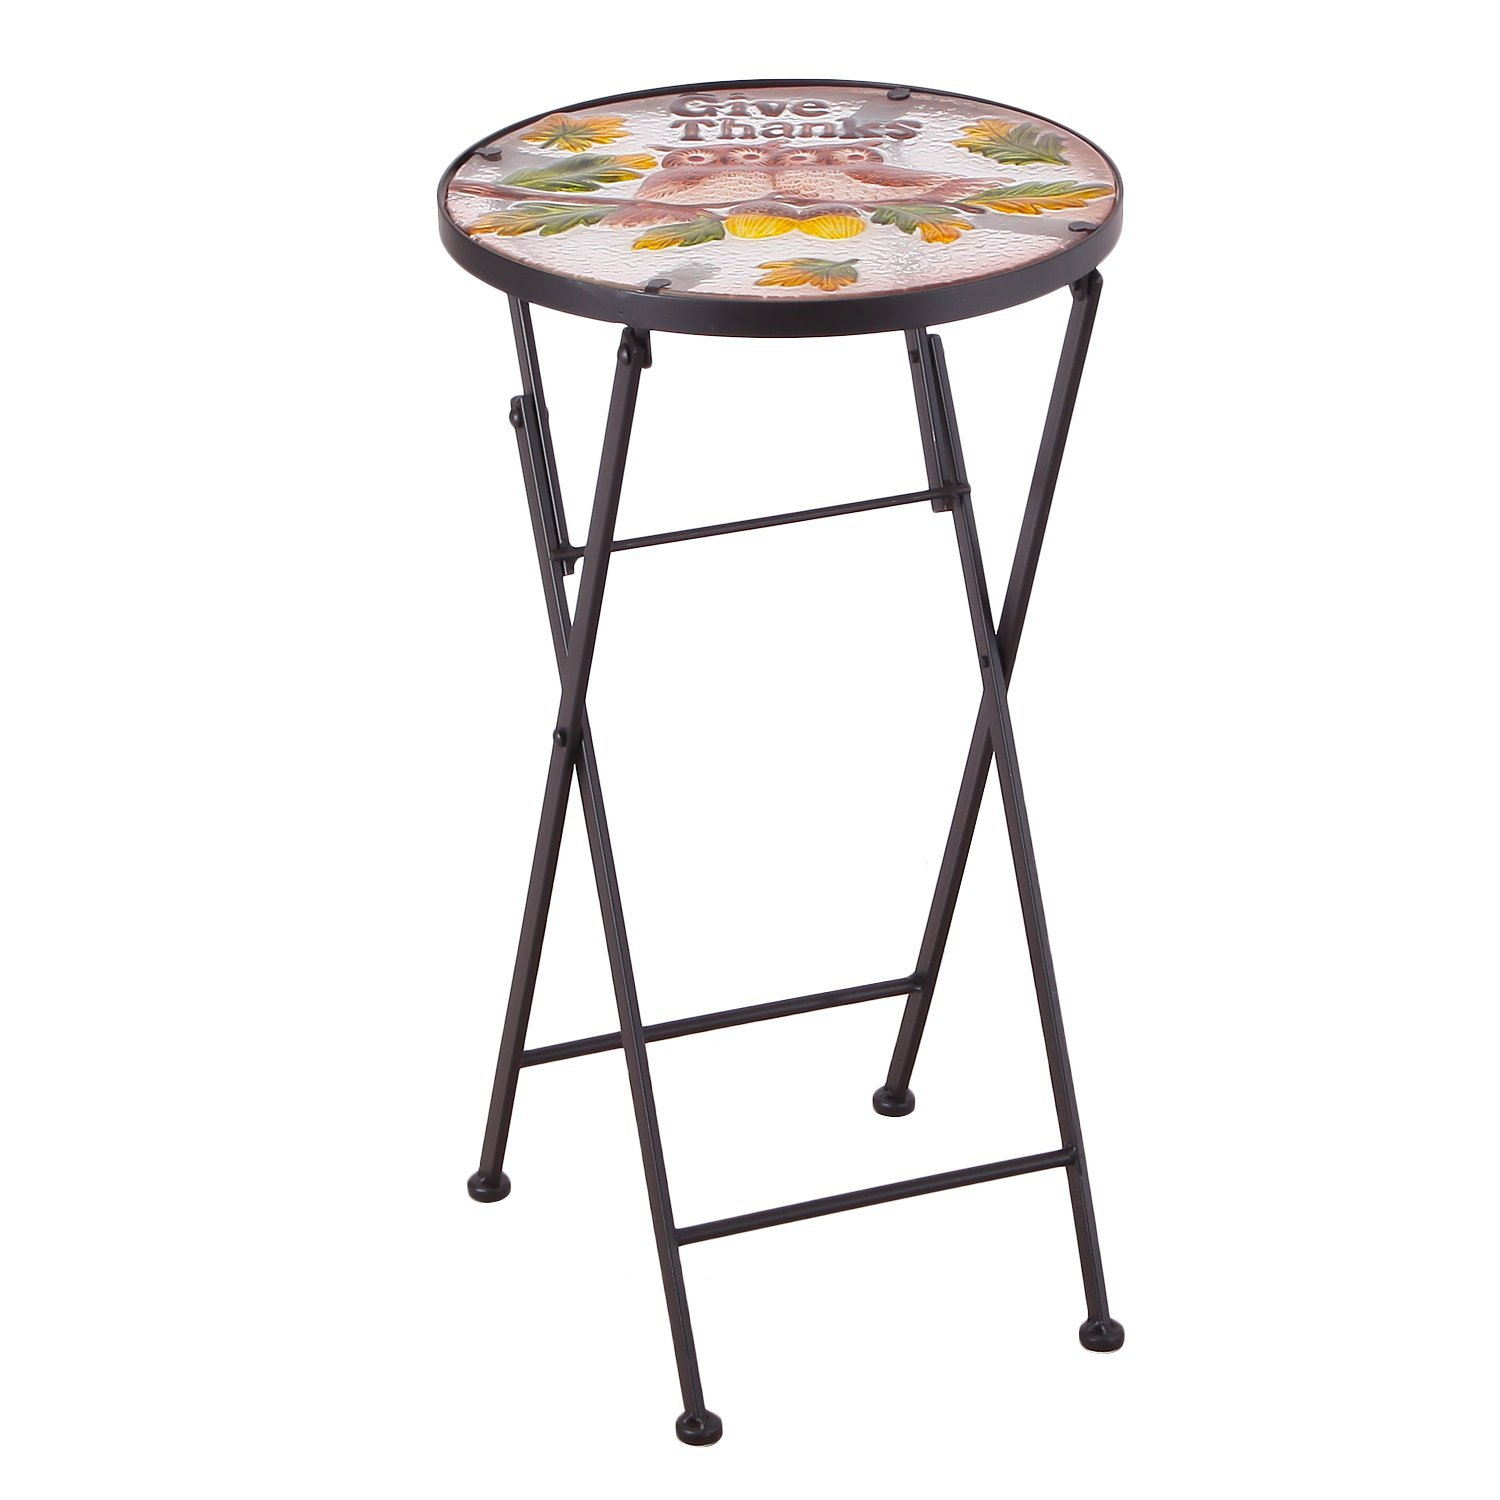 homebeez outdoor indoor foldable plant stand top round accent table side end folding for couple owes garden college dorm pottery barn plans inch tall ikea metal legs unique coffee